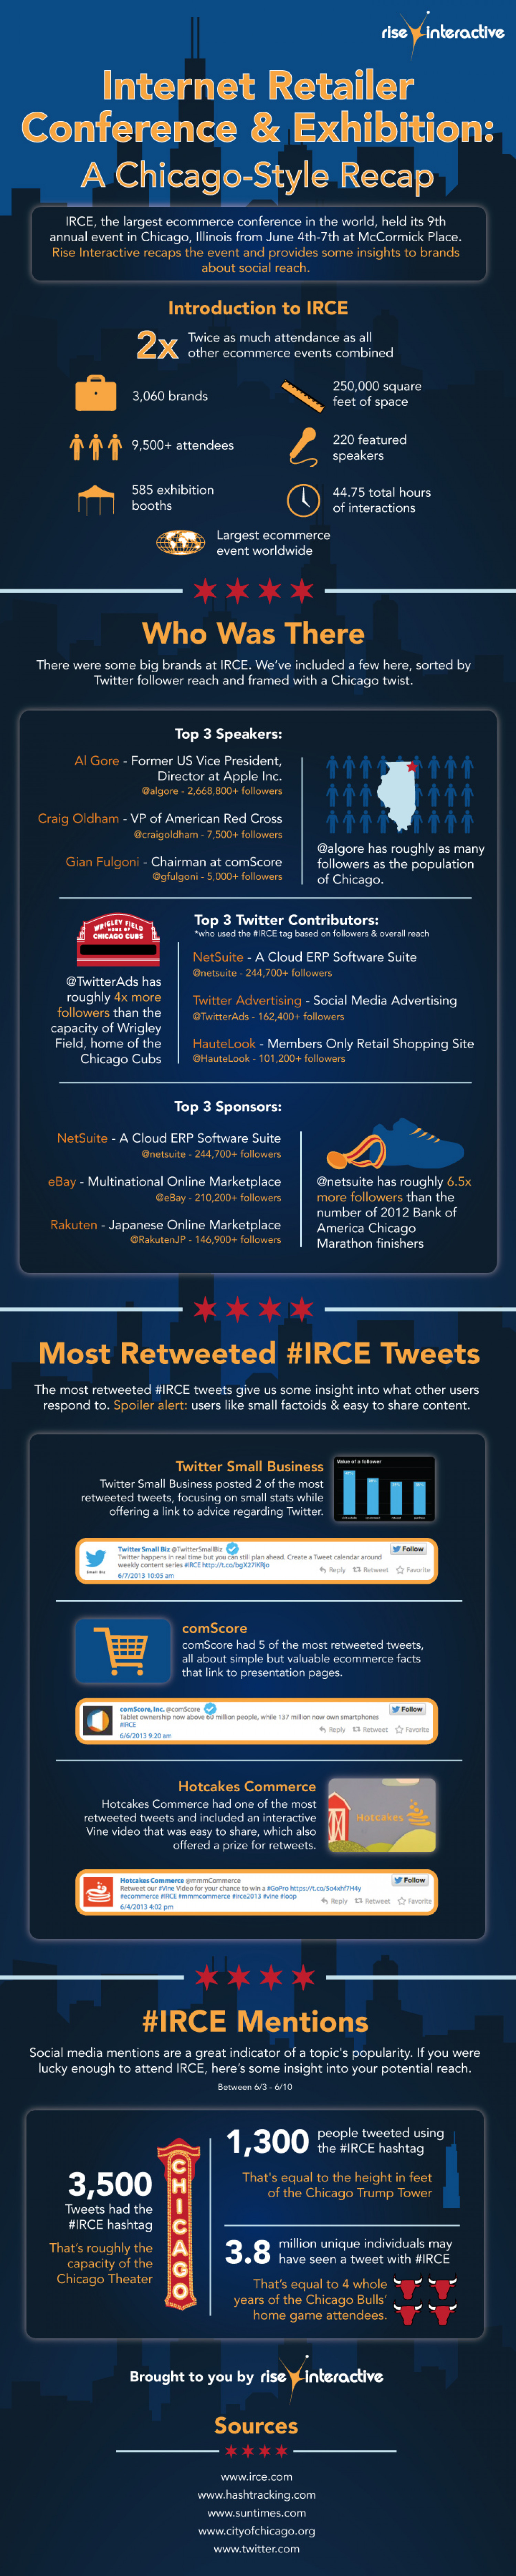 Internet Retailer Conference & Exhibition: A Chicago-Style Recap Infographic